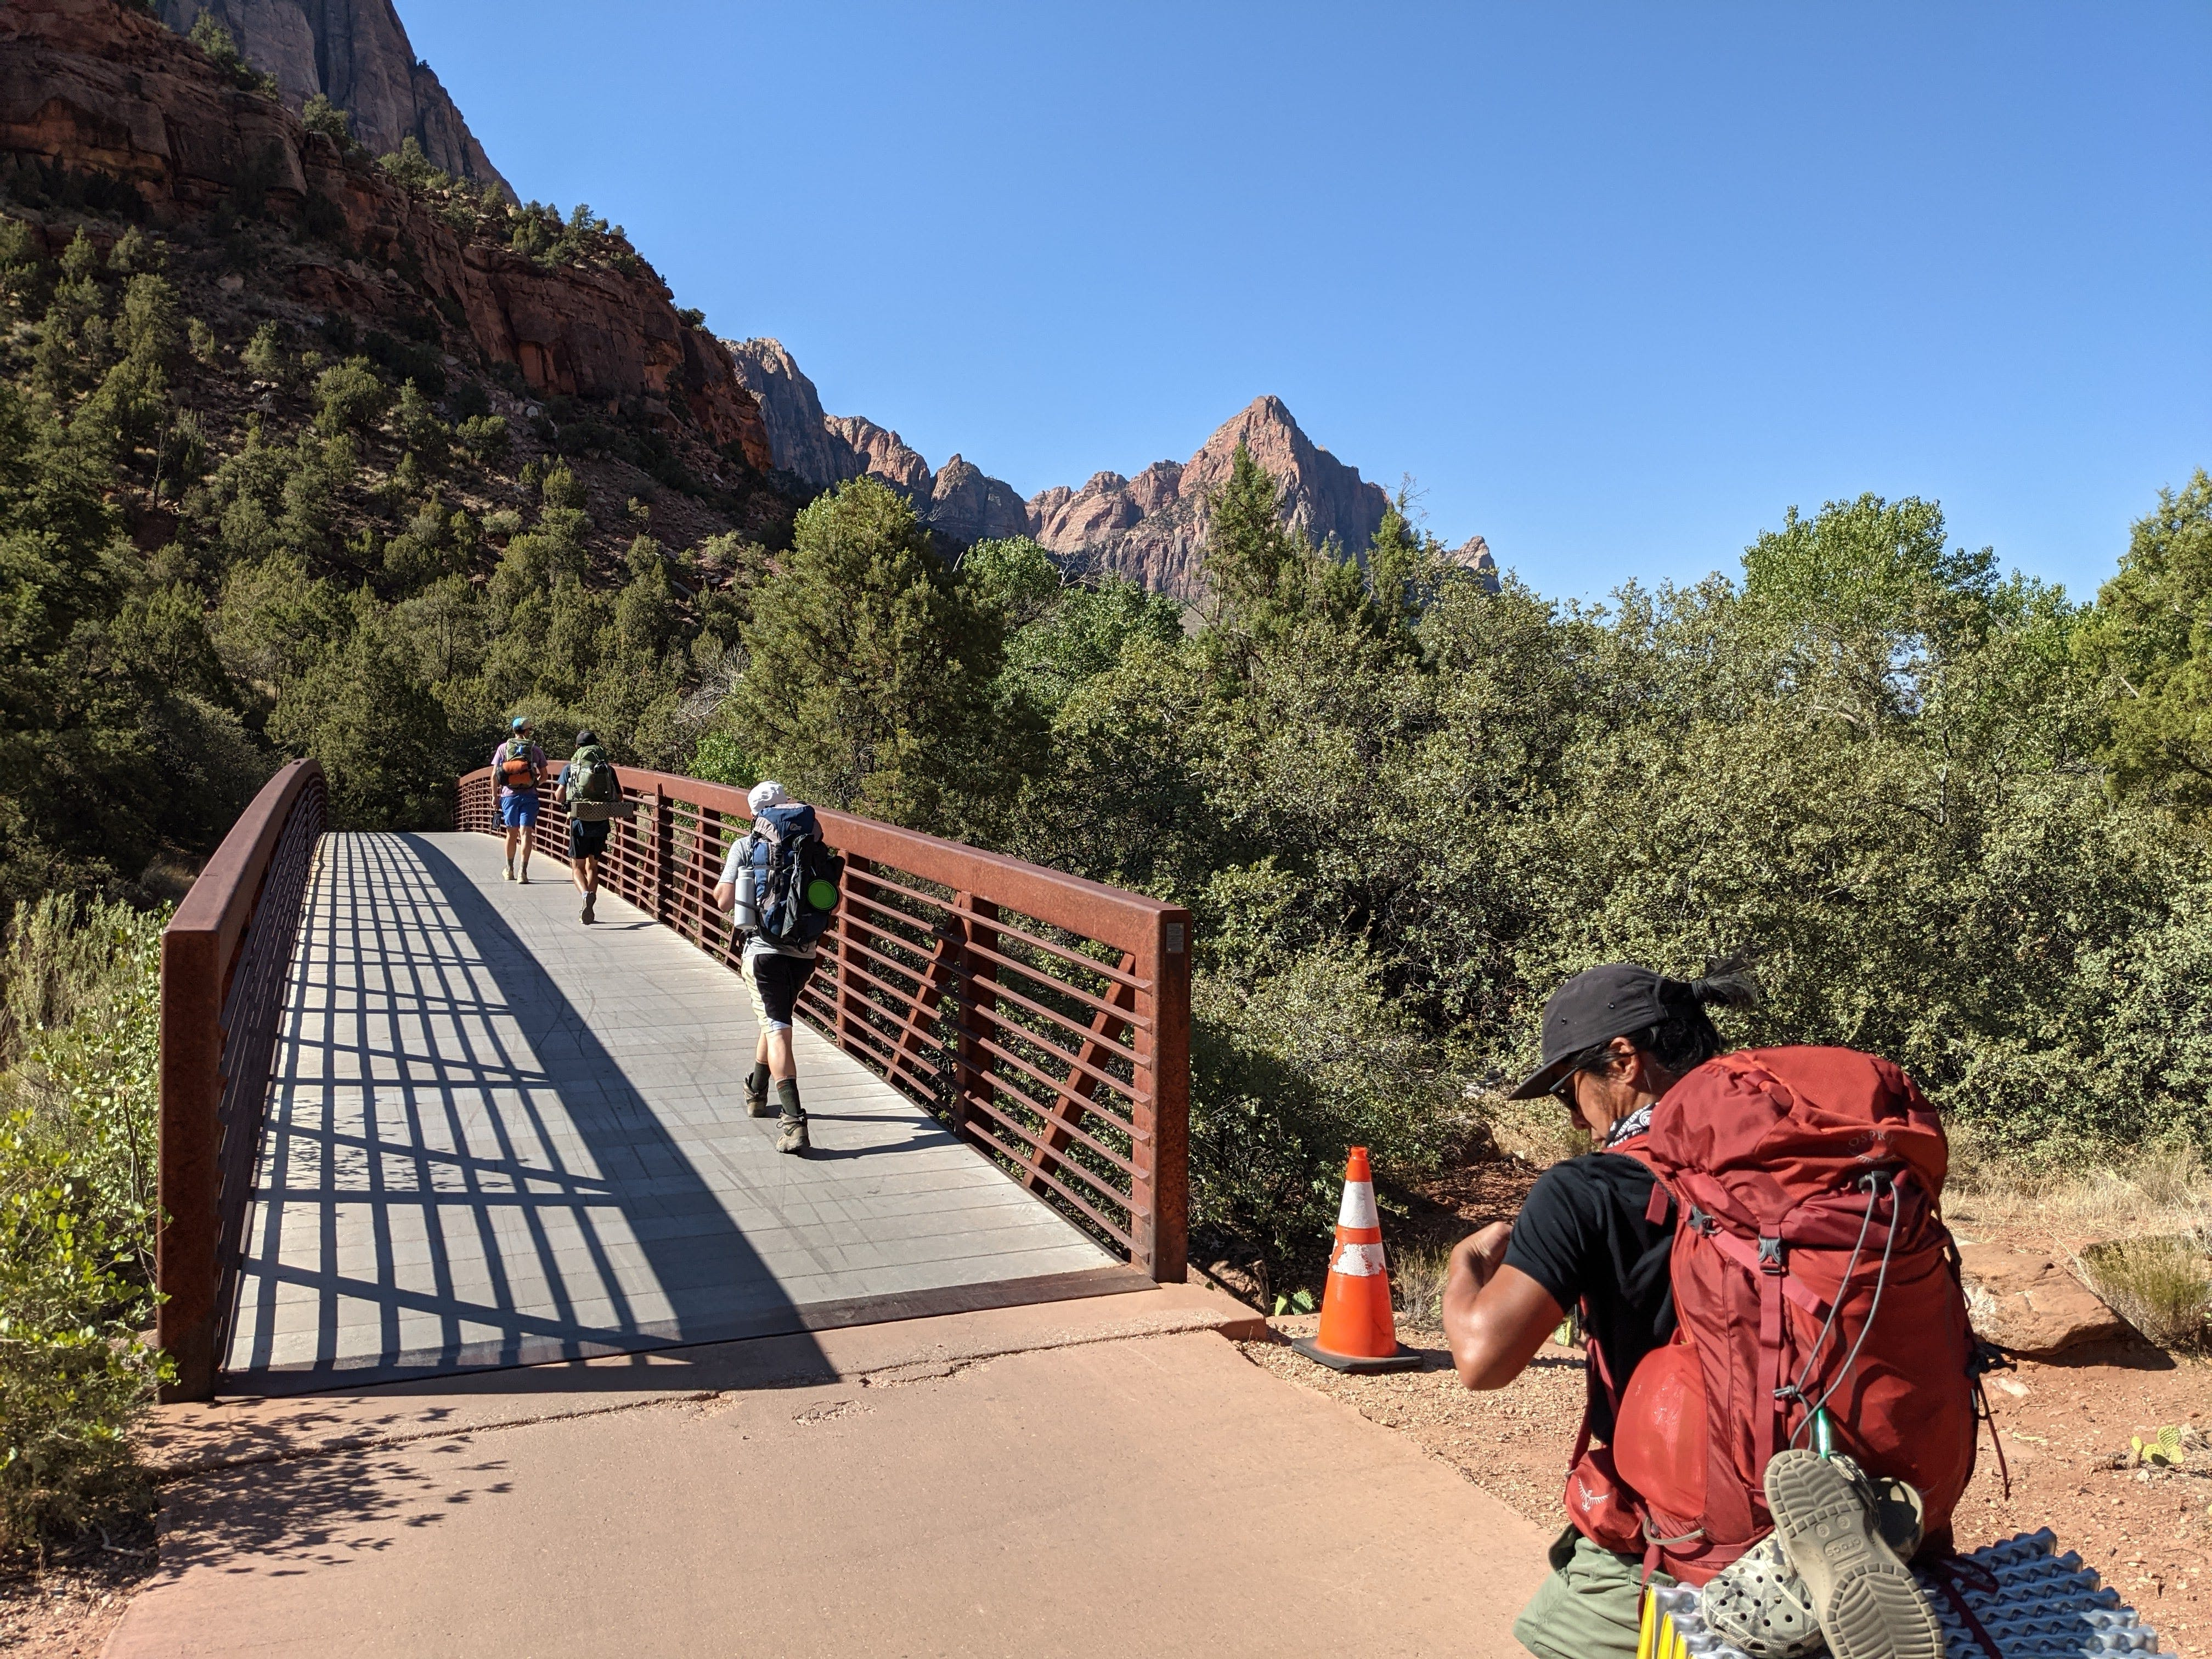 Hikers crossing a bridge on a backpacking trip in Zion National Park.